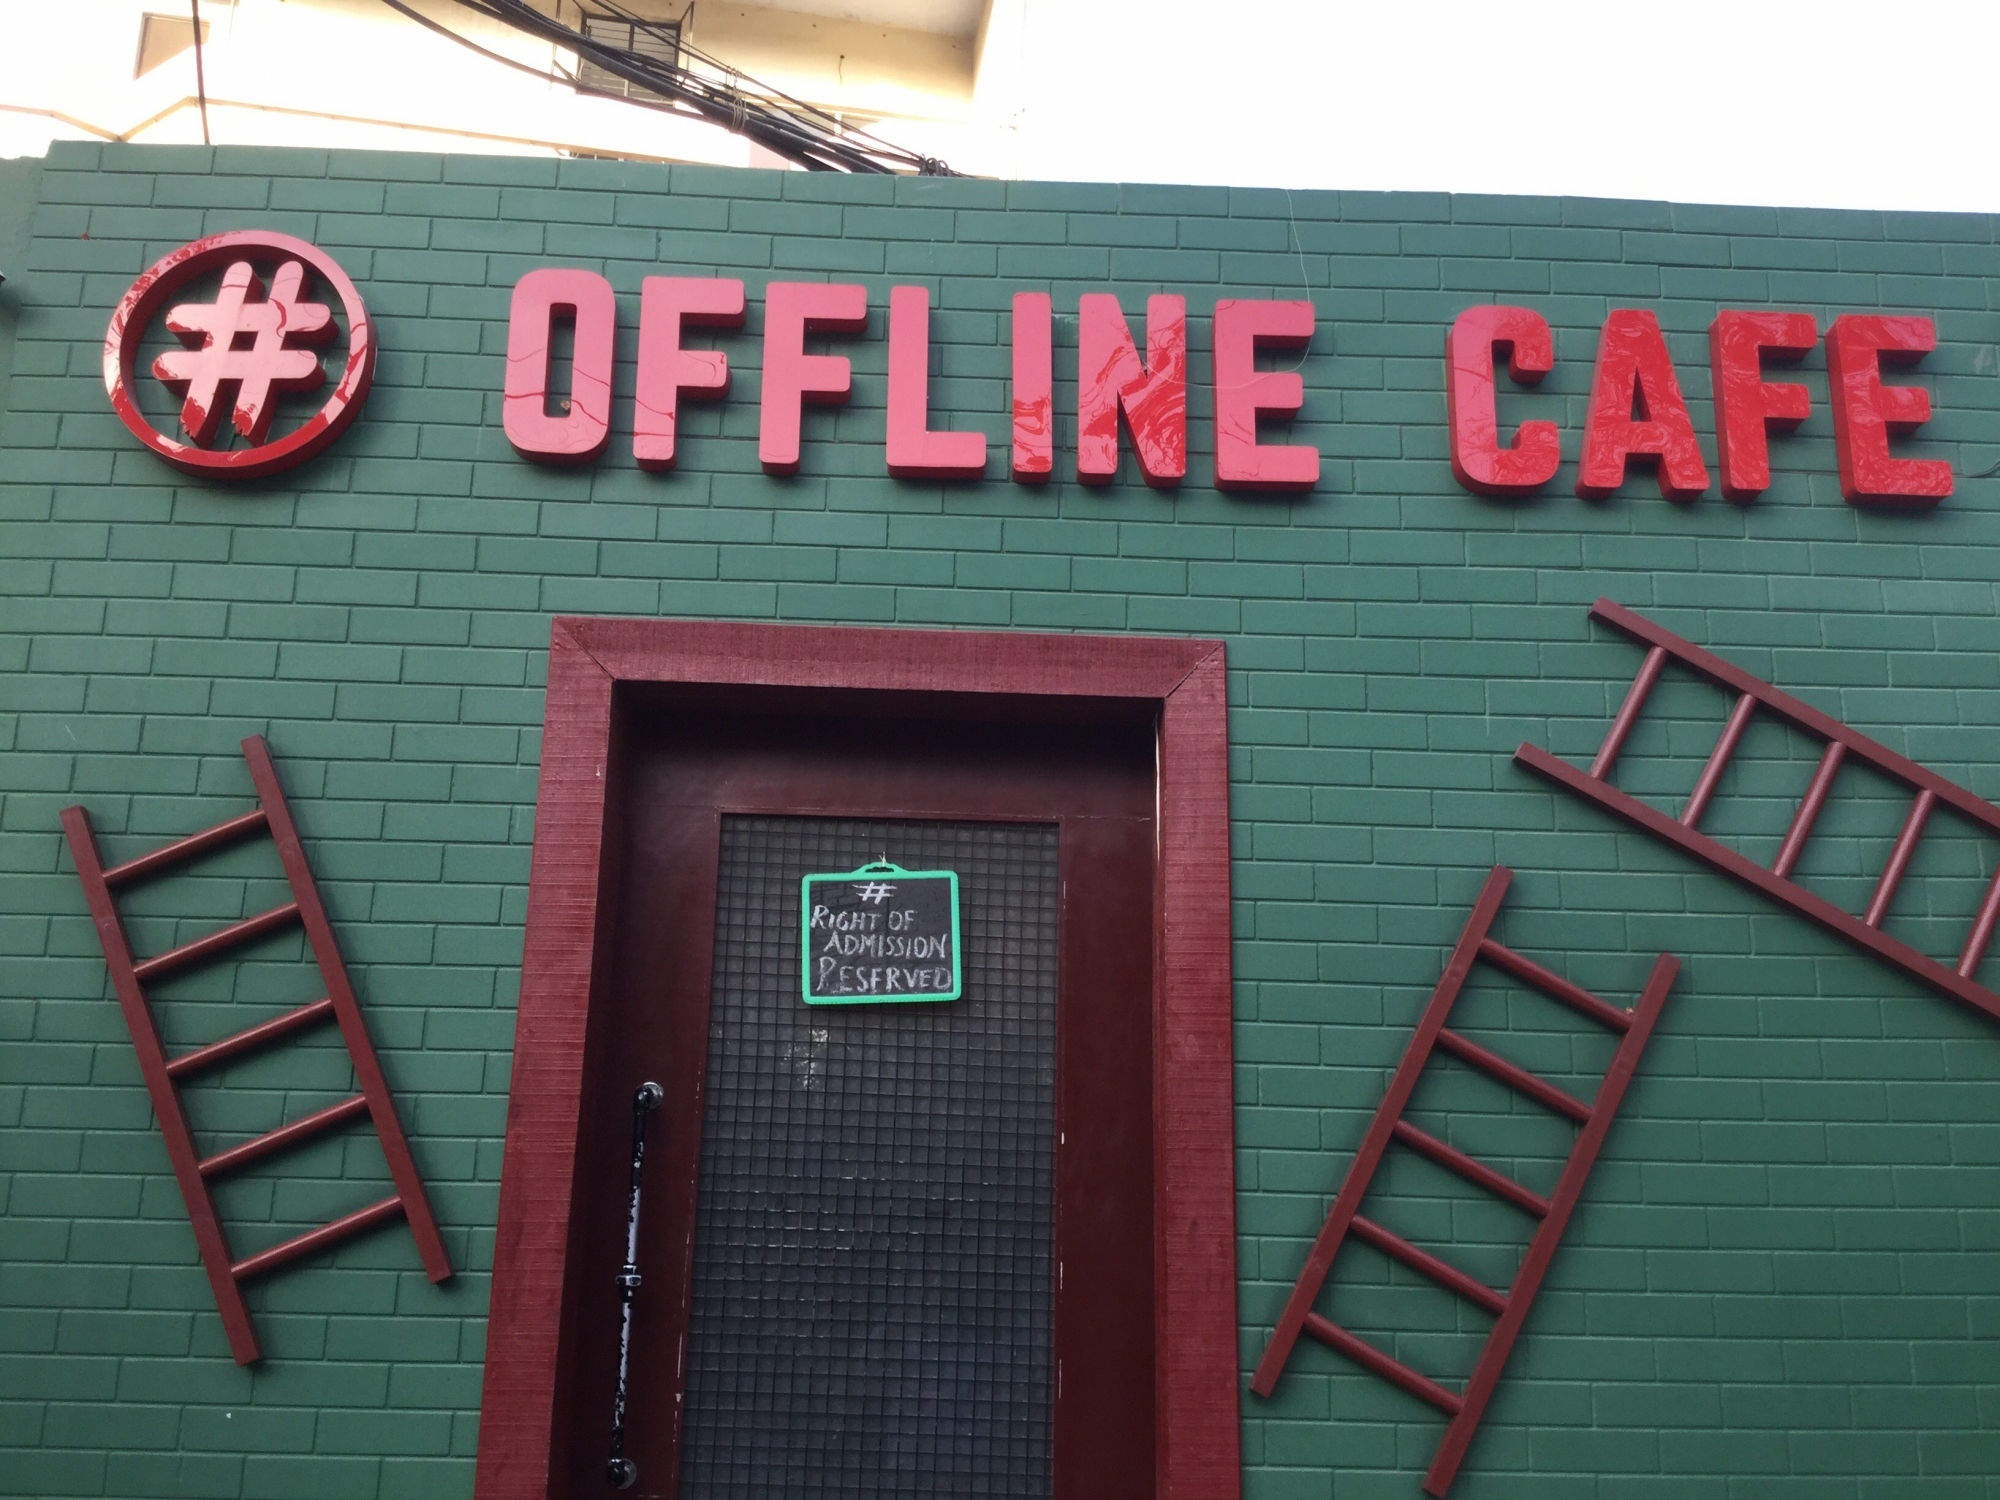 Offline Cafe Tilak Nagar Kanpur Menu Photos Images And